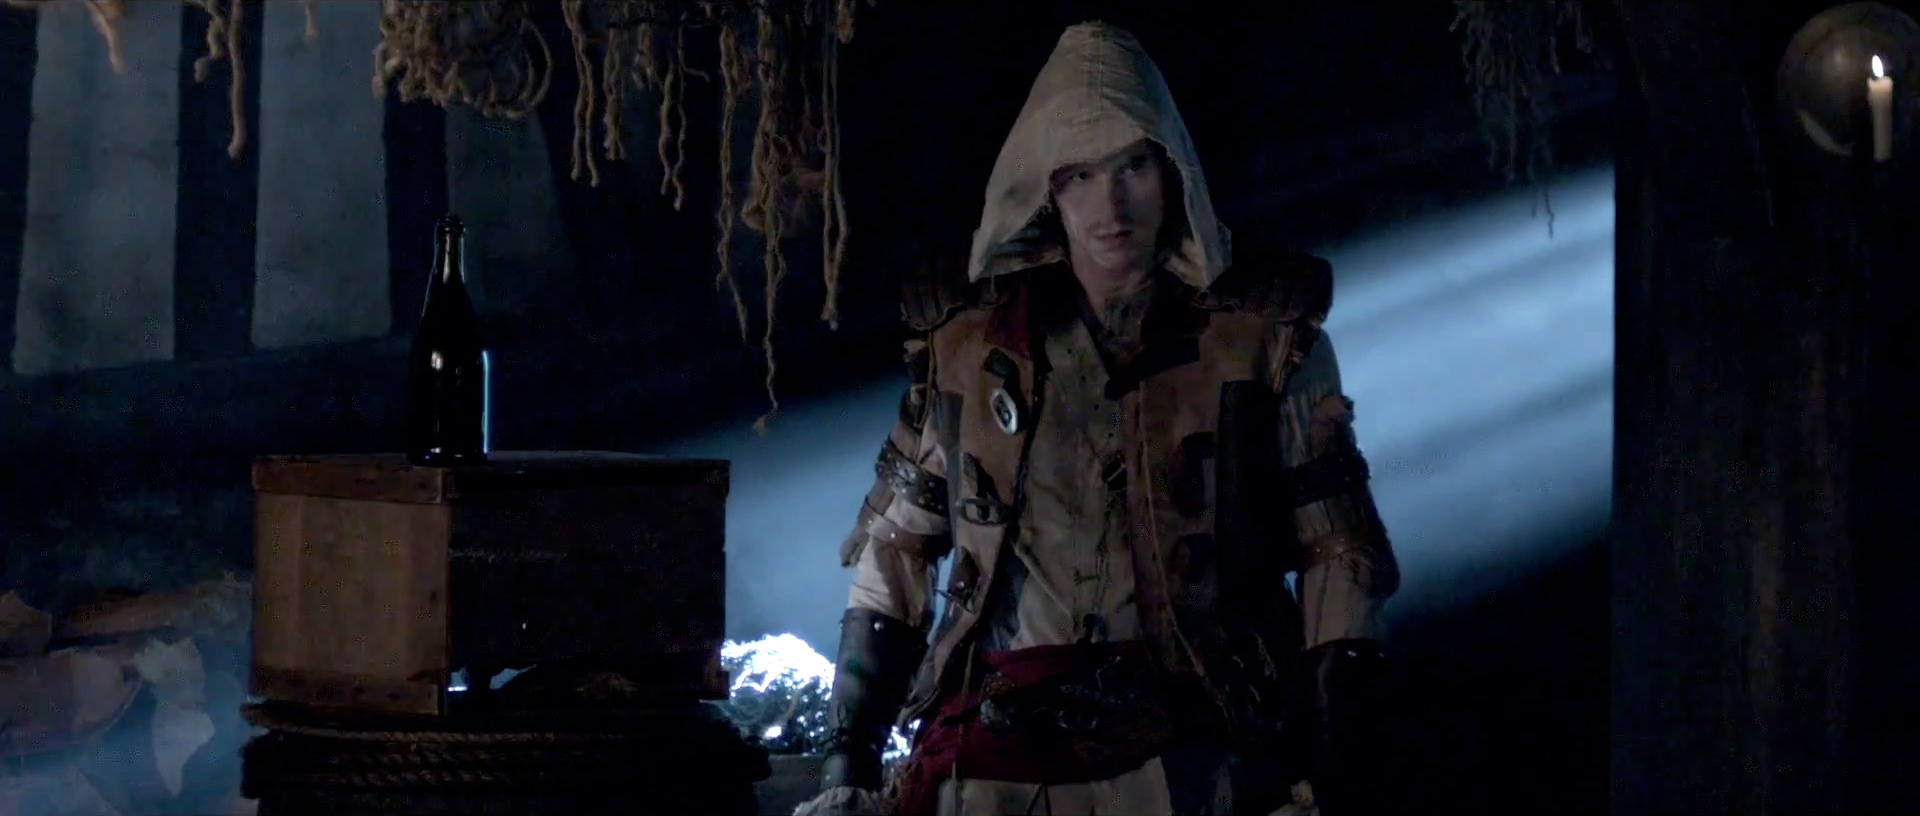 awesome-assassins-creed-short-film-checkmate-3.jpg